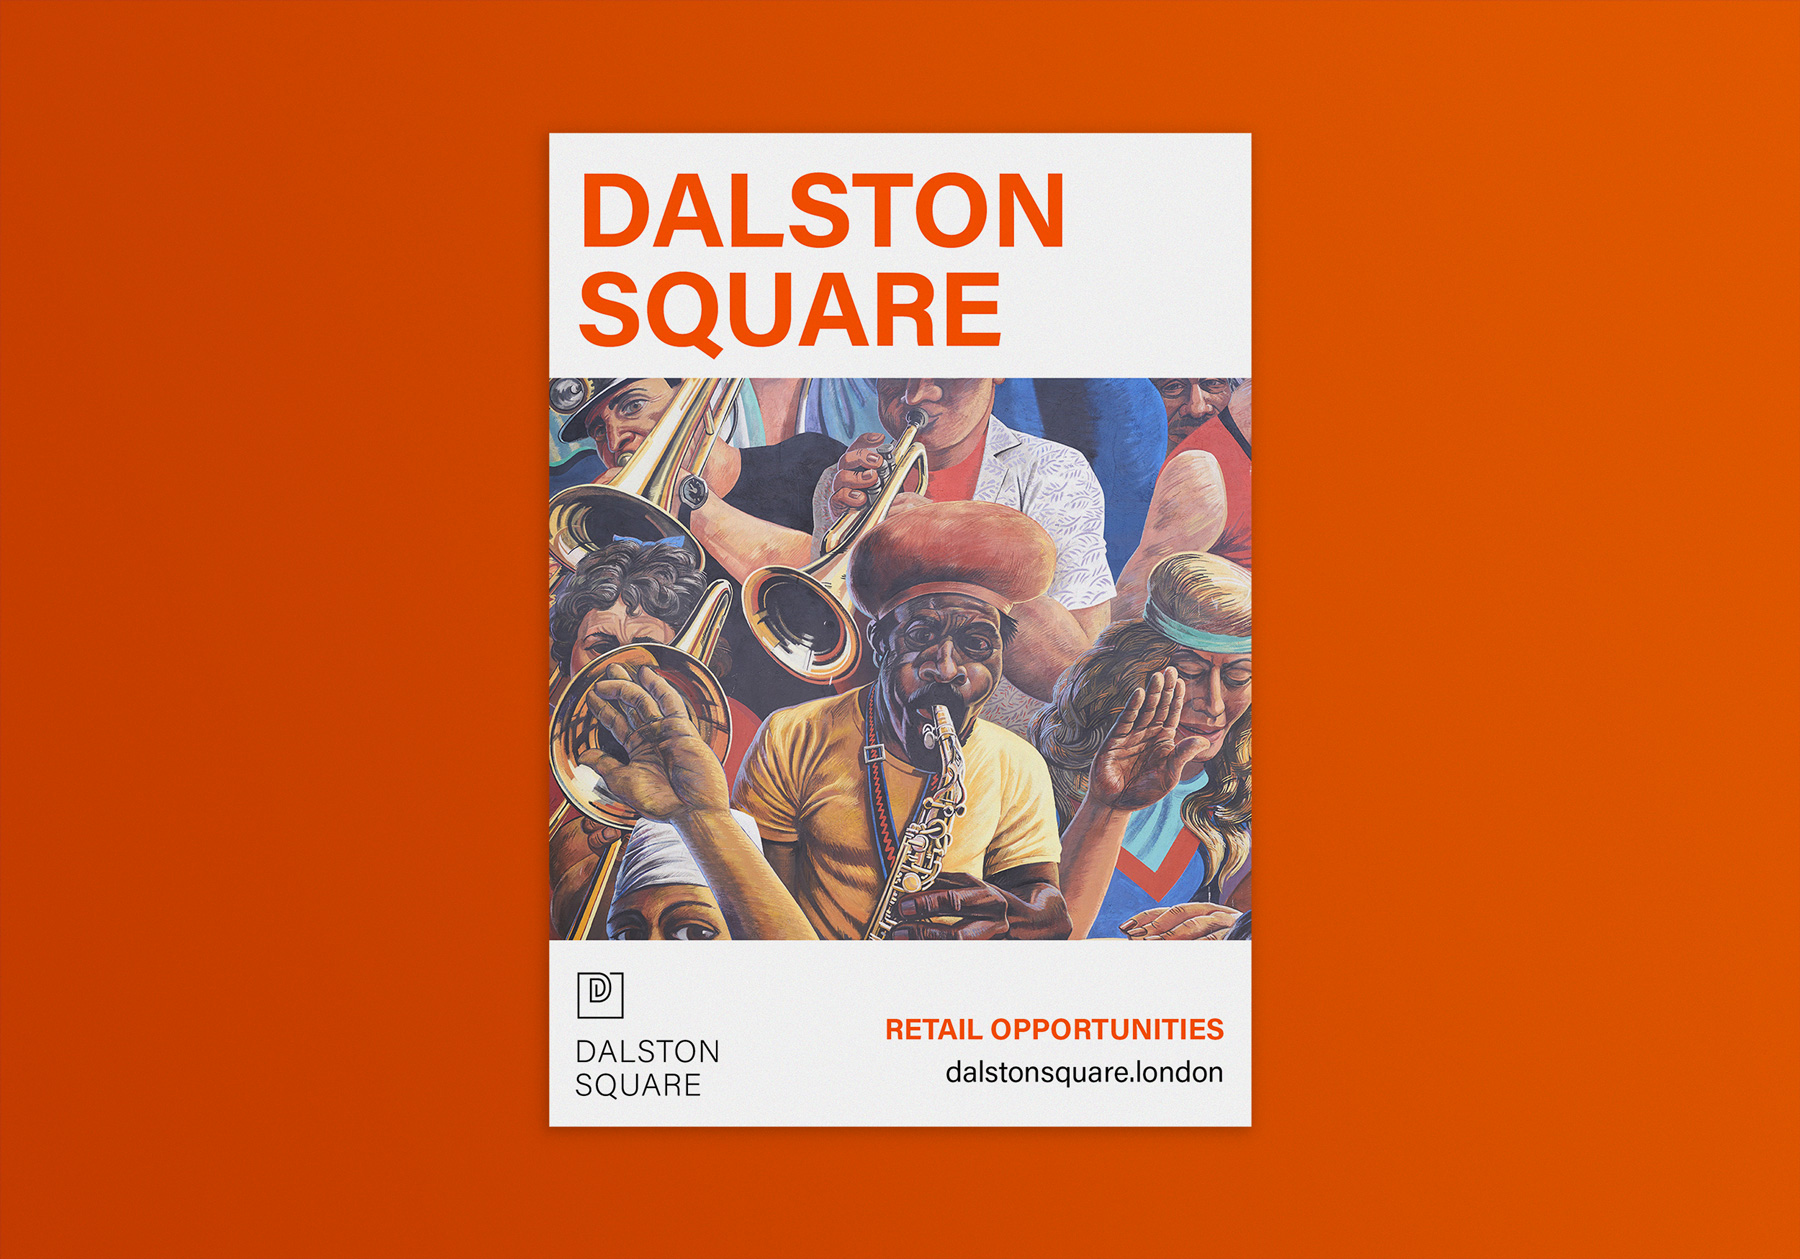 _dalston-square-brochure_pages-by-ALSO-agency-01.jpg